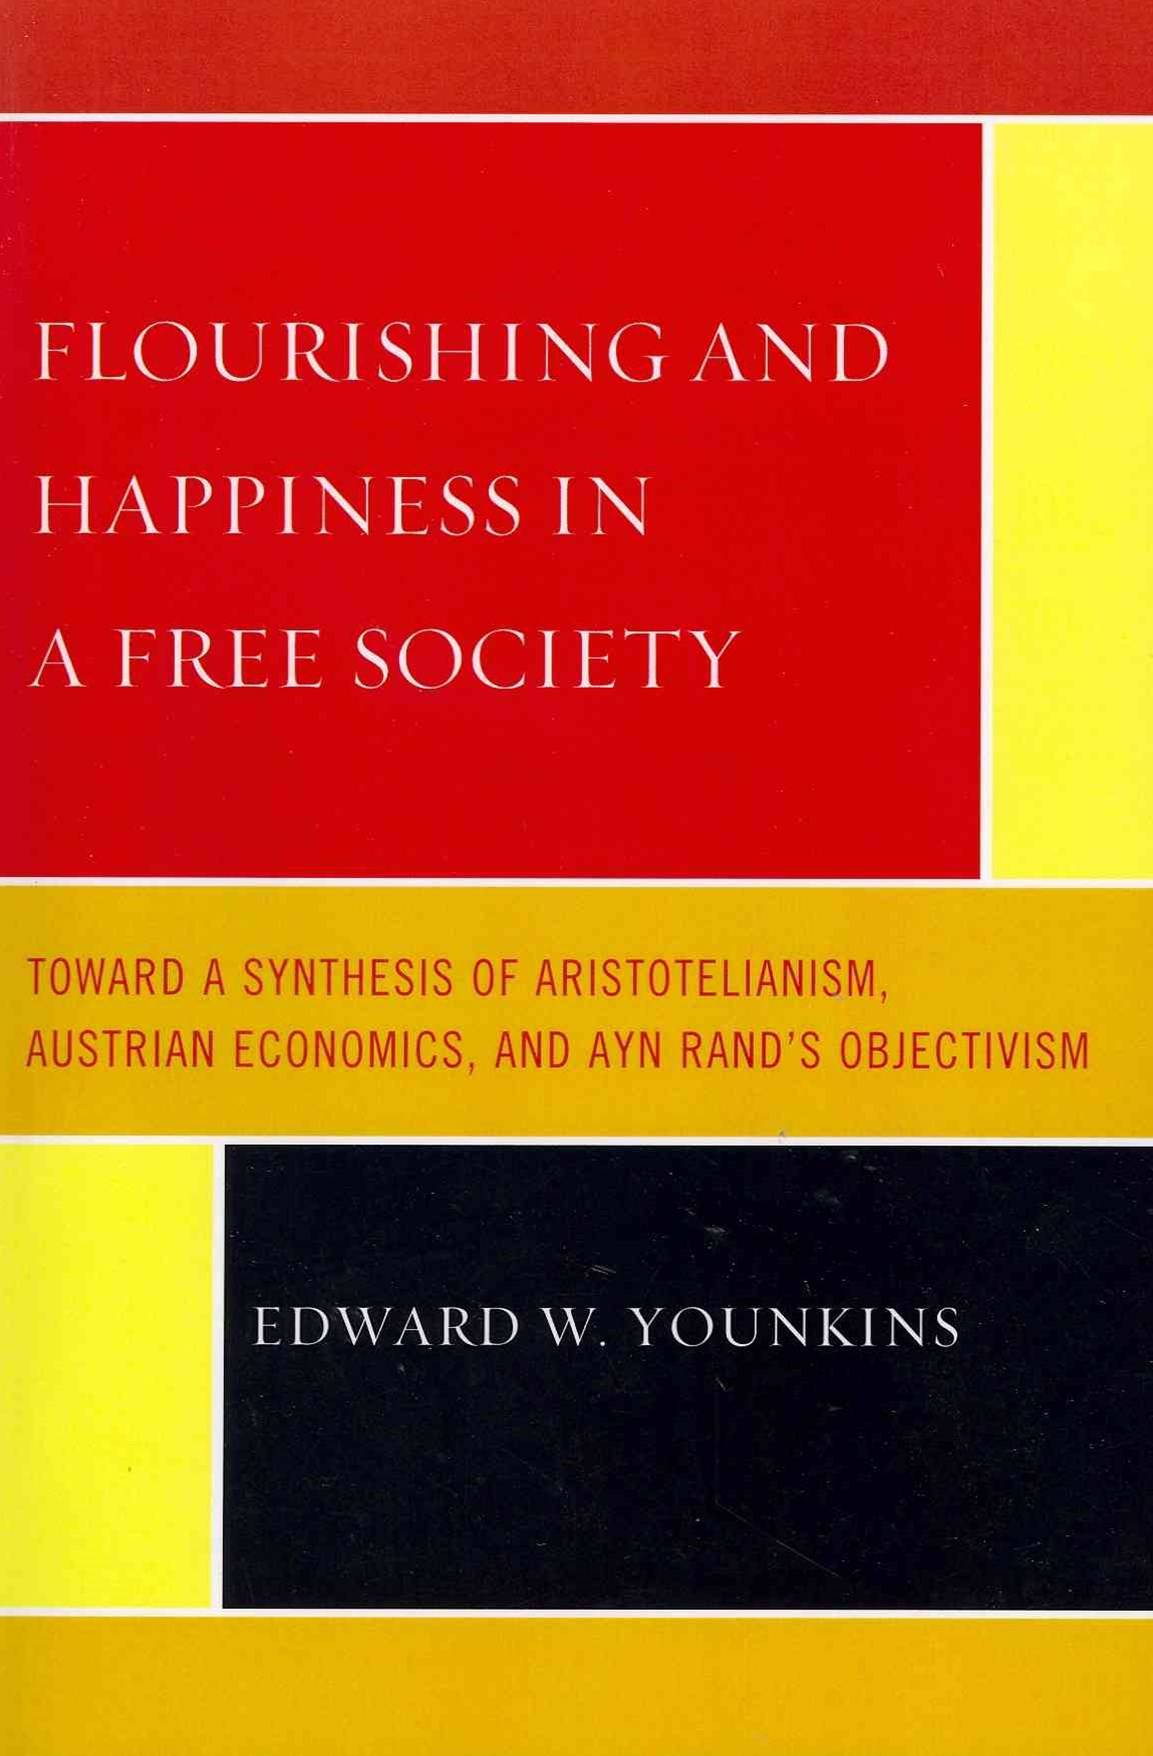 Flourishing and Happiness in a Free Society